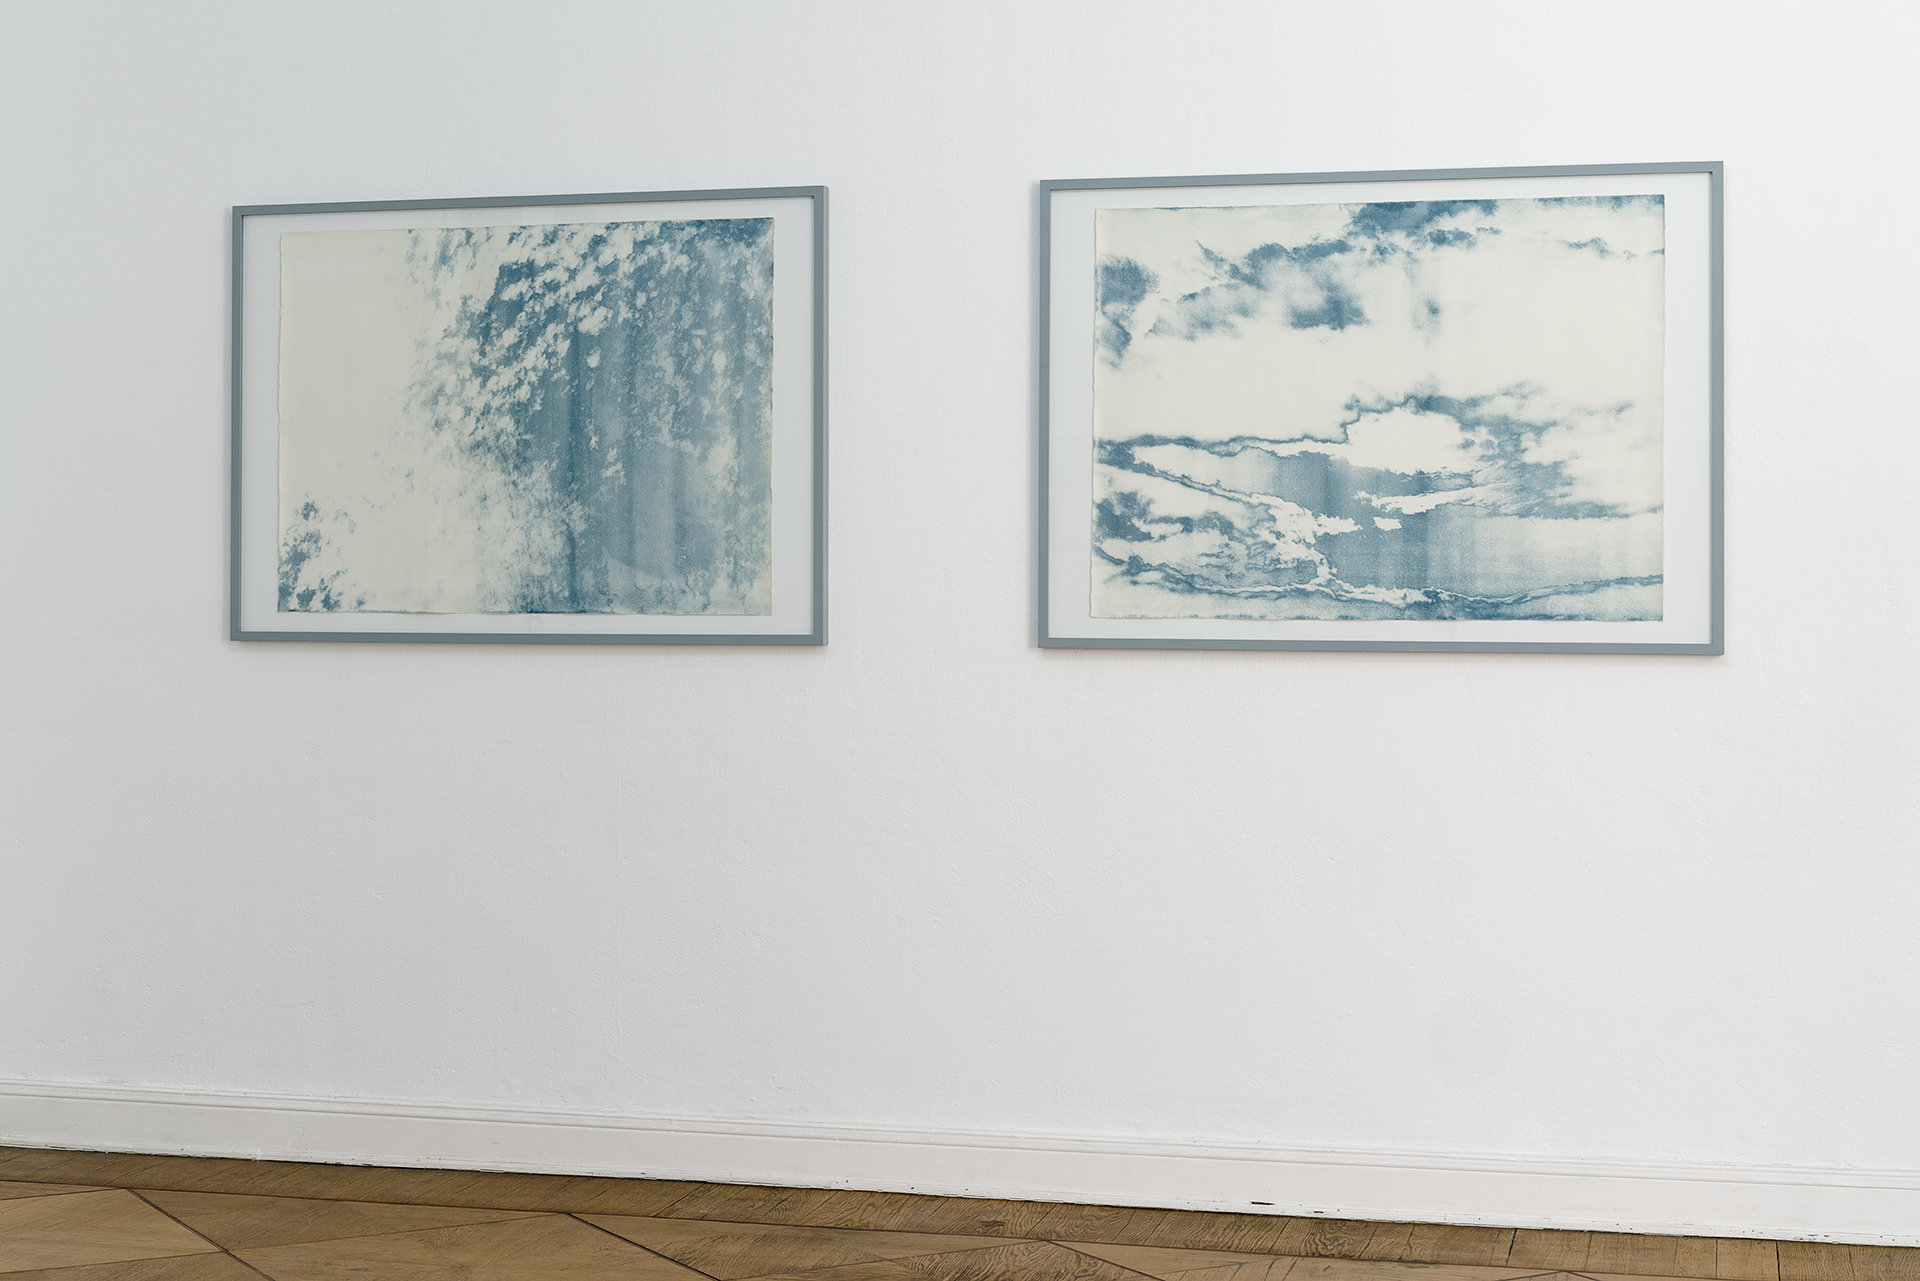 SOLARIZED CYANOTYPES, 2015 79 x 106 cm